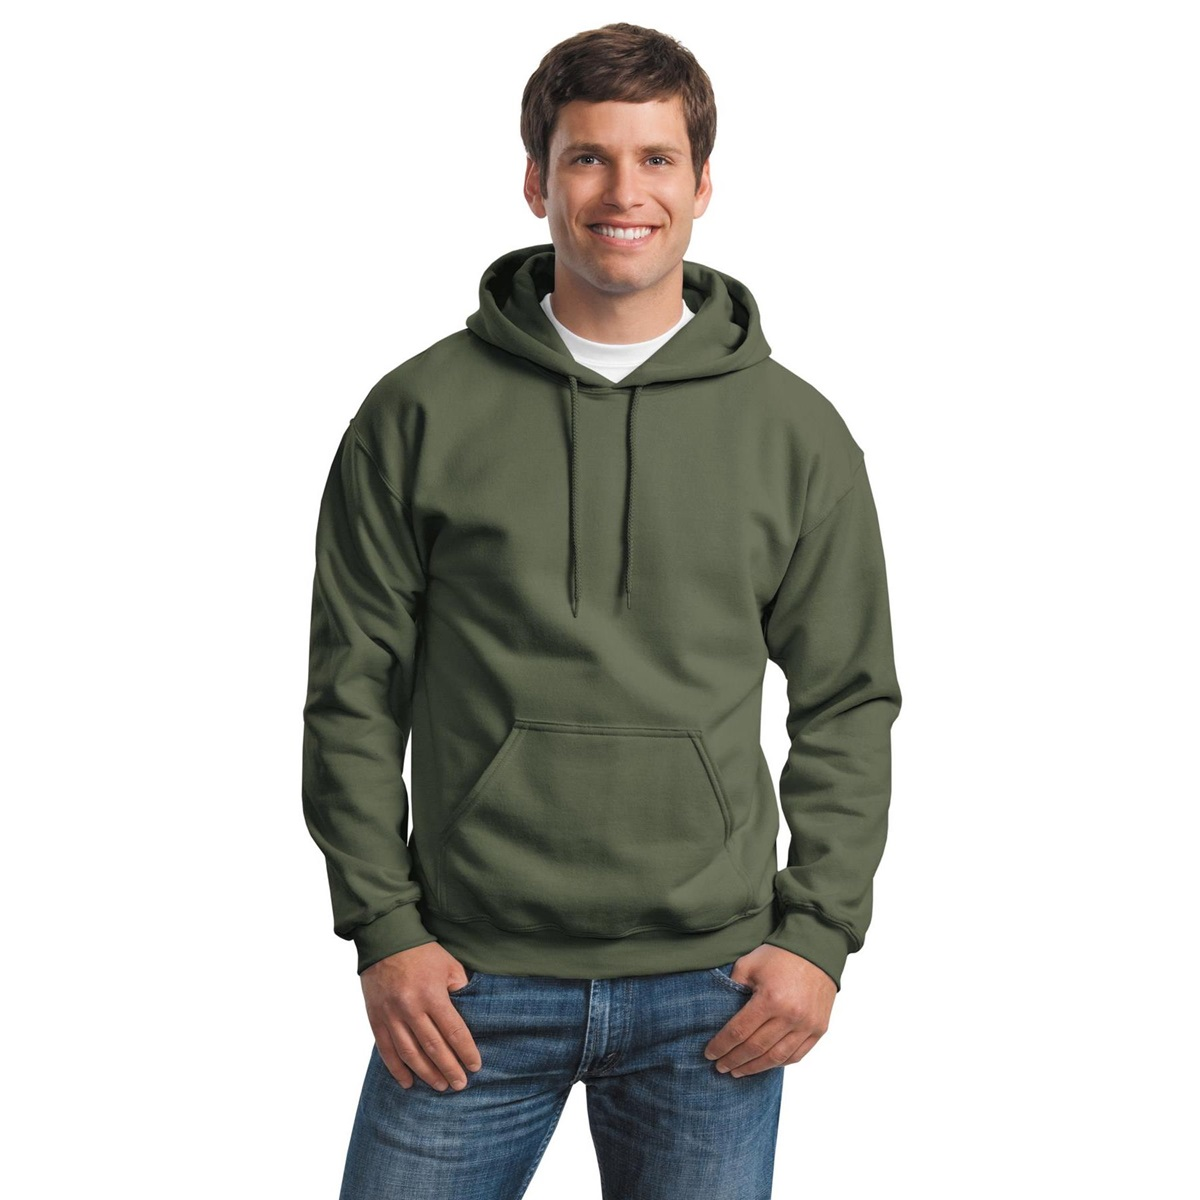 Gildan 18500 heavy blend hooded sweatshirt military for Gildan camouflage t shirts